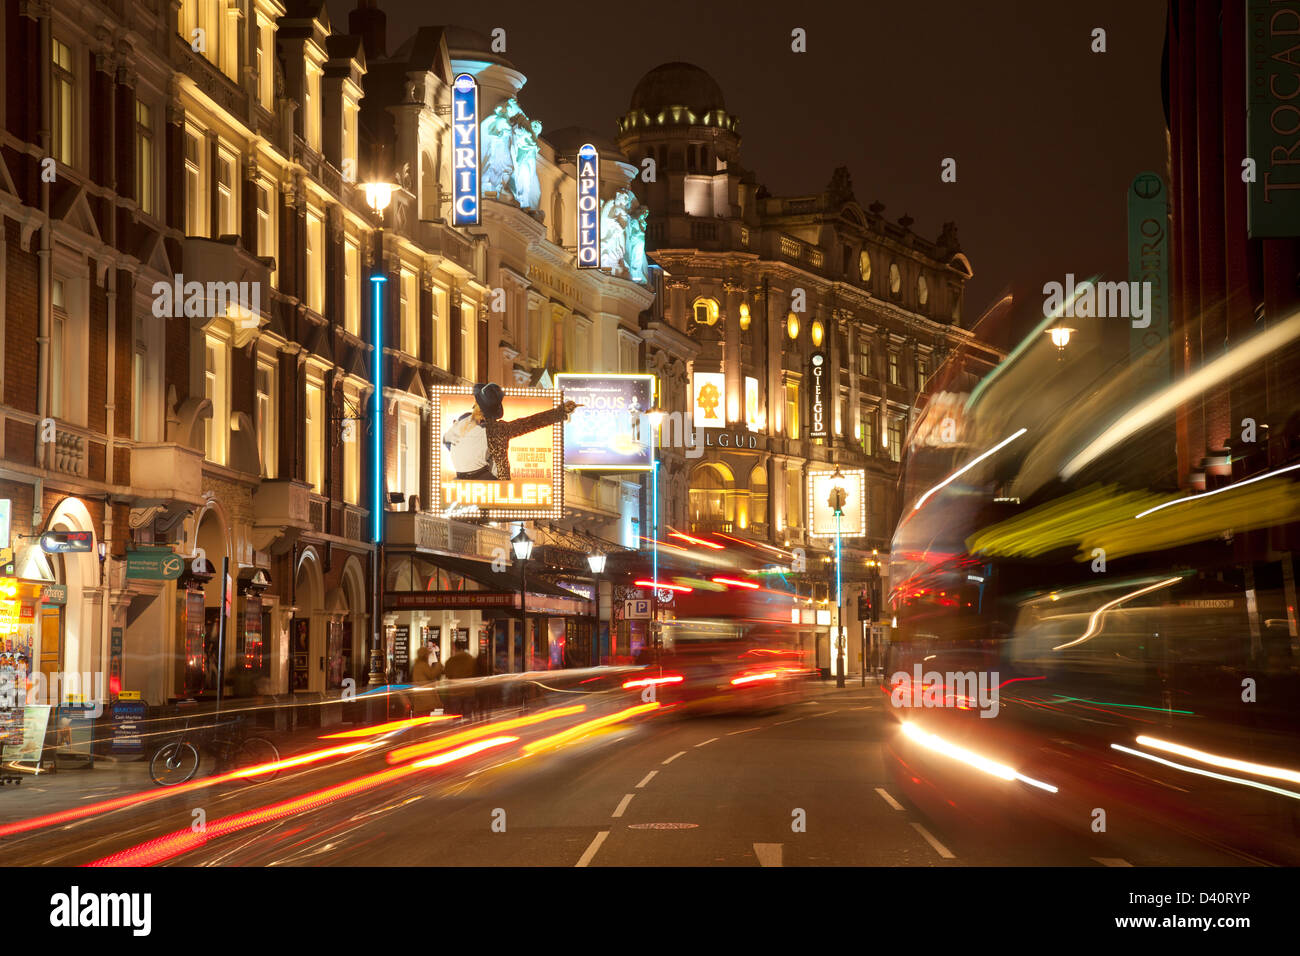 Heart of London theatreland, Shaftesbury Avenue: Lyric, Apollo, Gielgud theatres with bus light trails at night - Stock Image